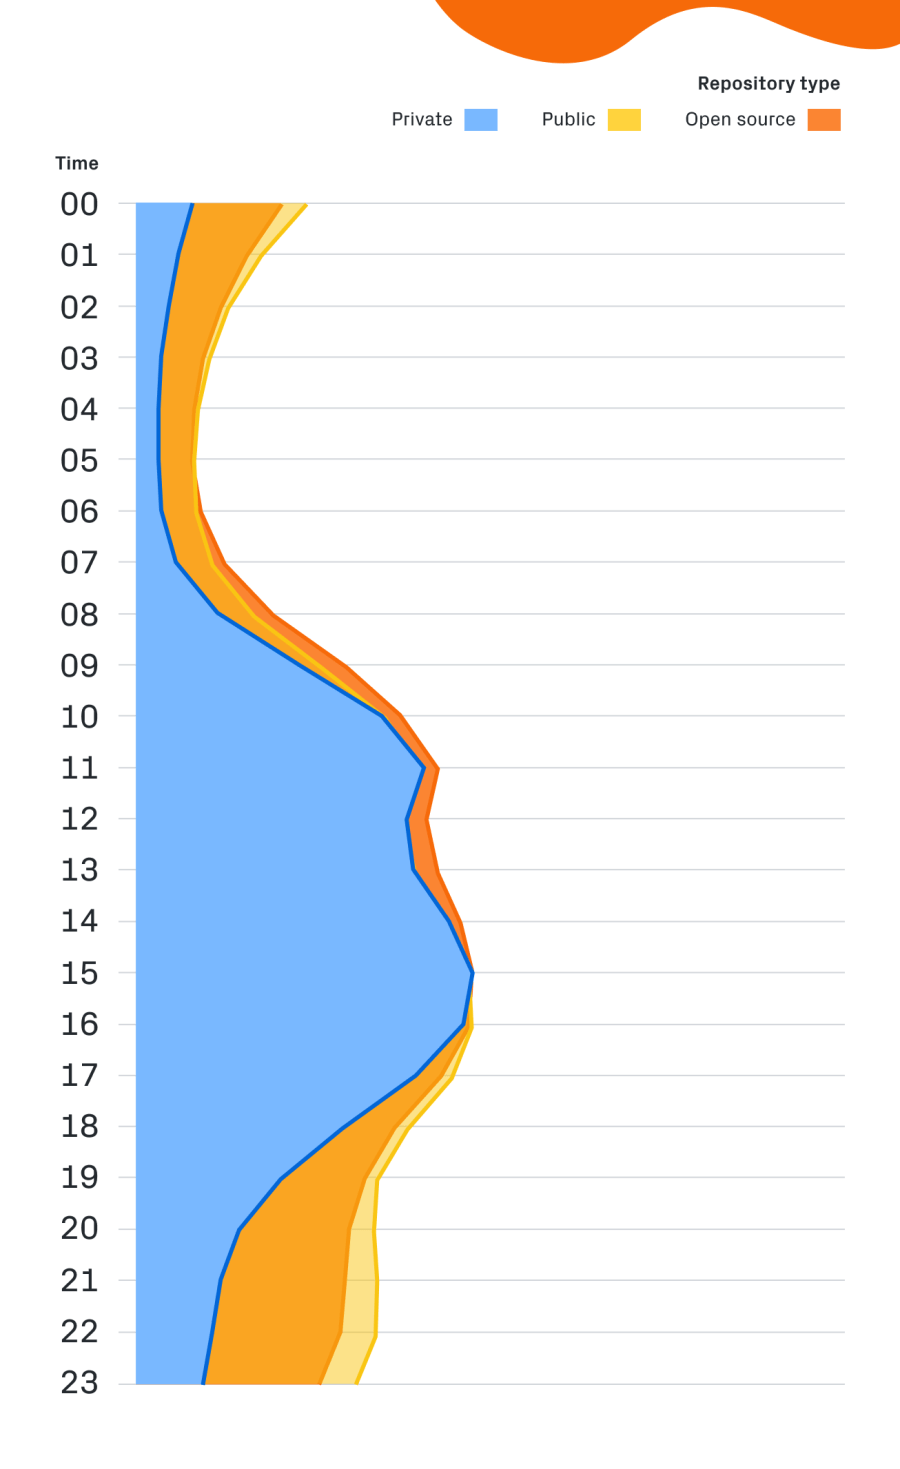 Repository activity throughout the day